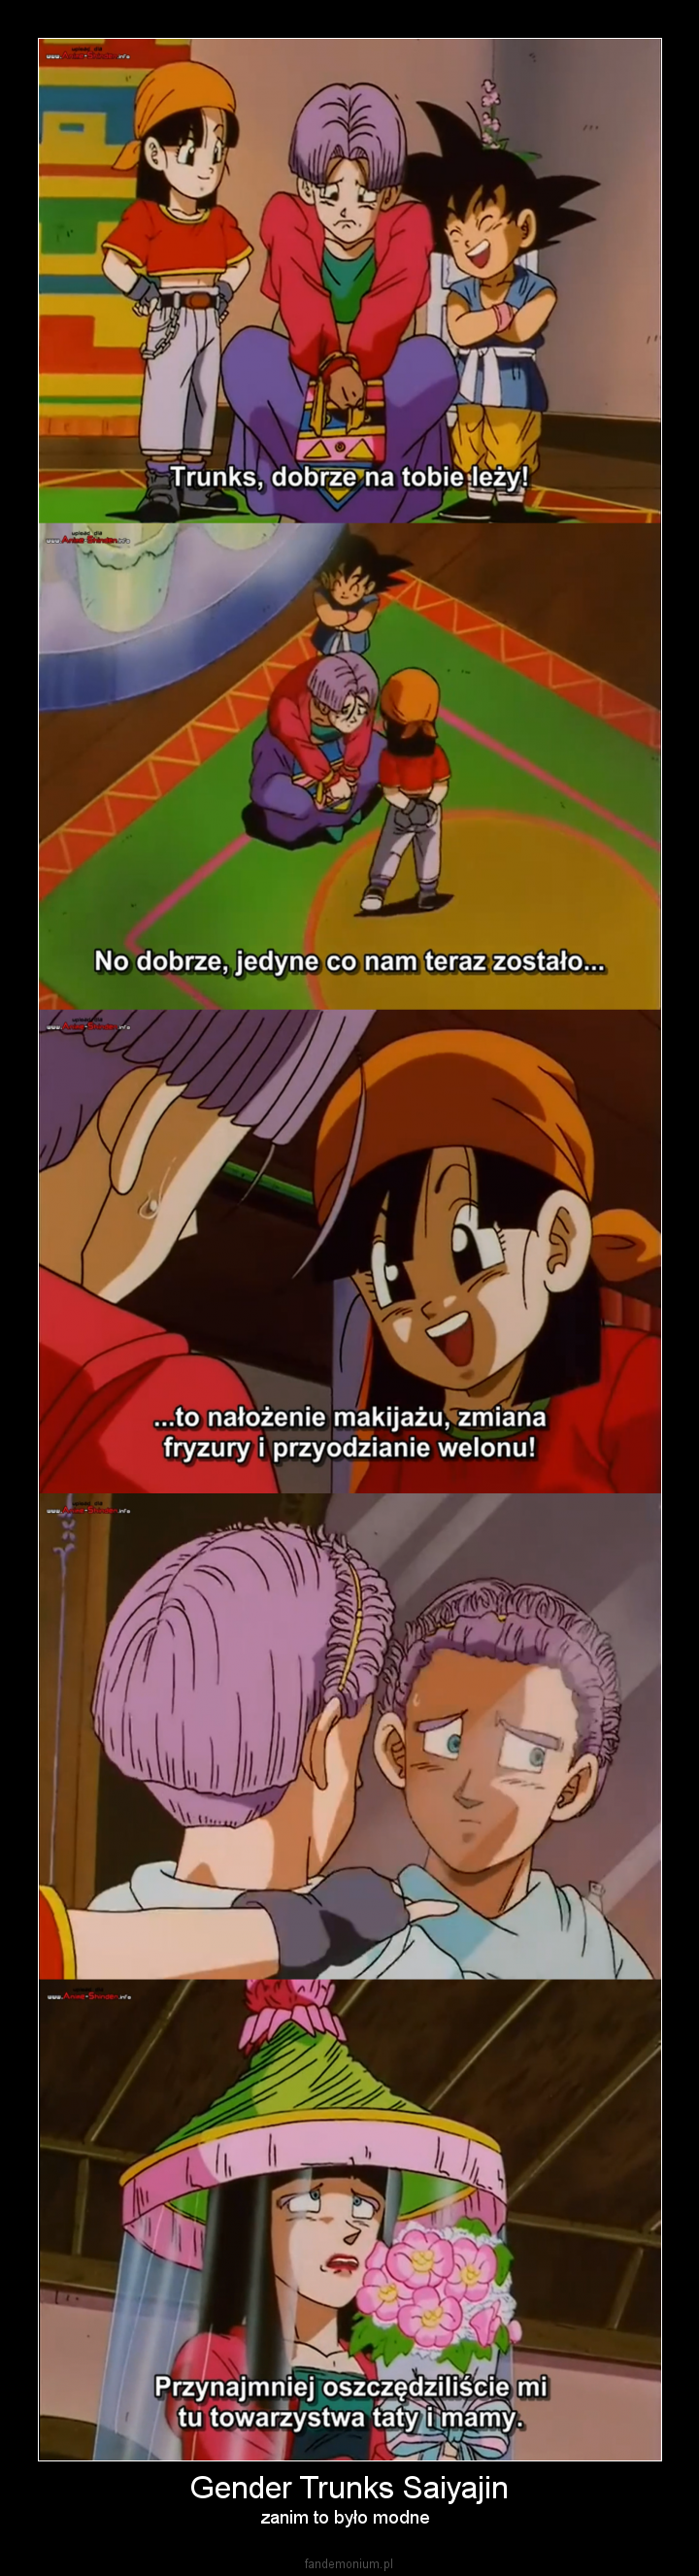 Gender Trunks Saiyajin - zanim to było modne